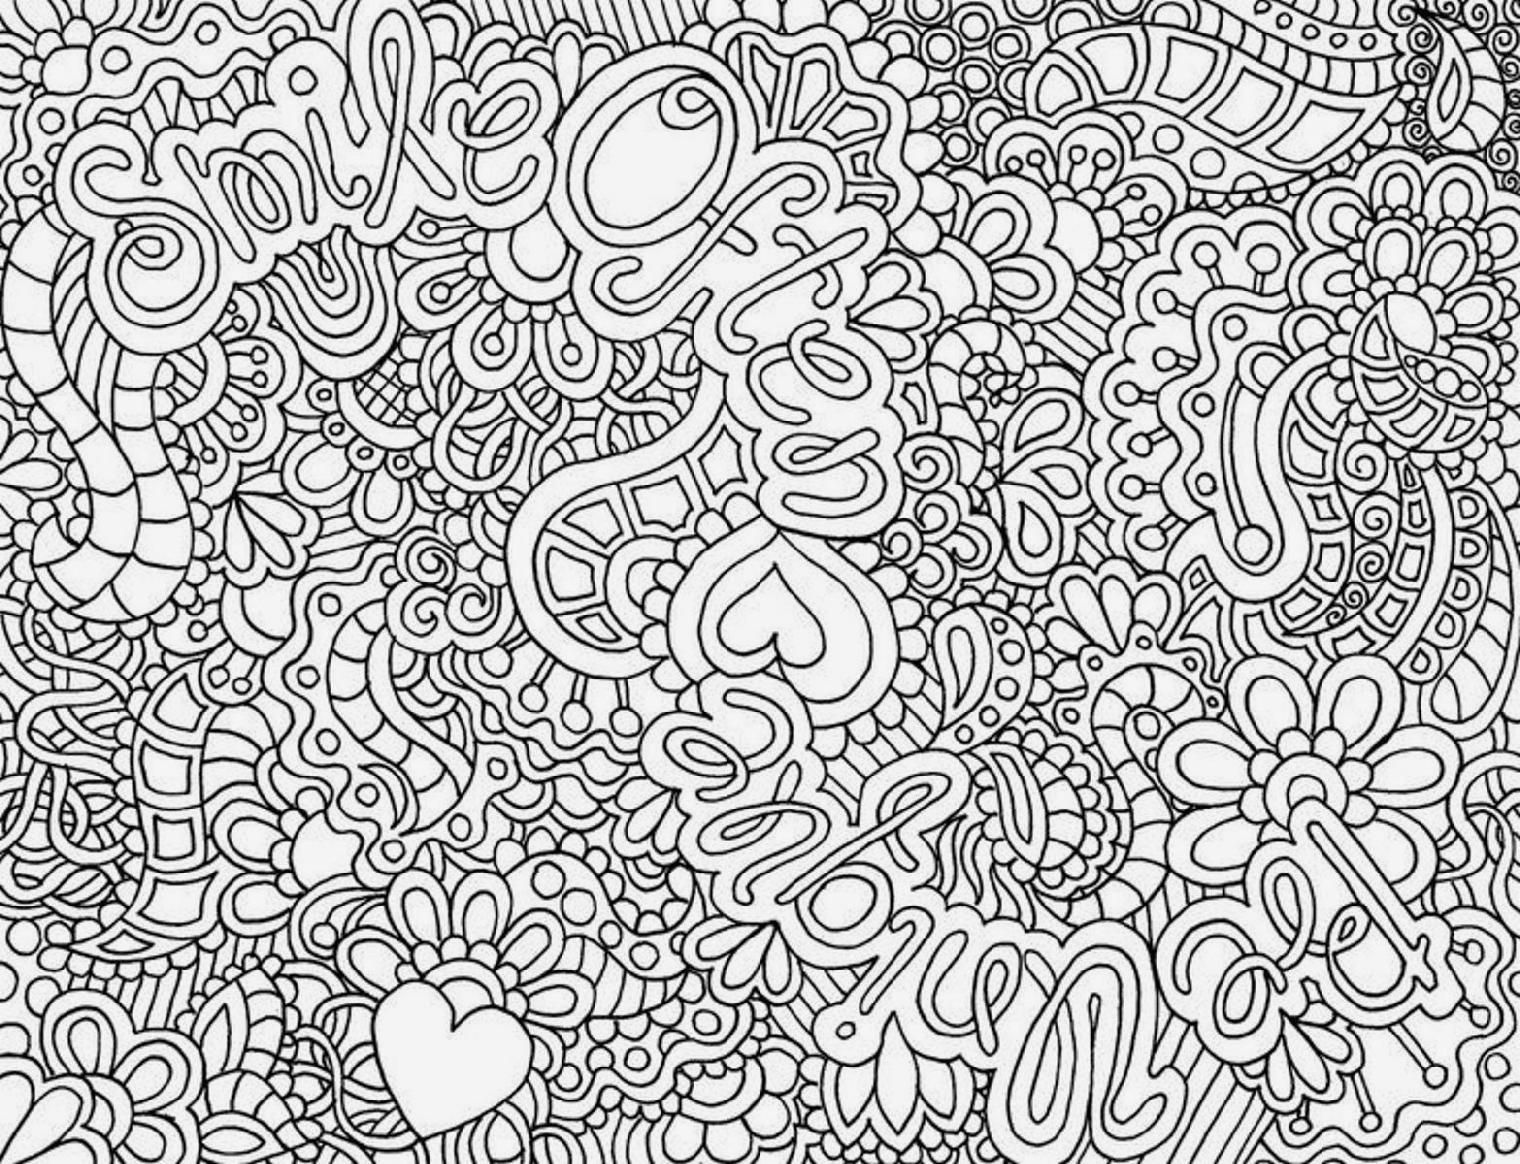 Complicated Coloring Pages Adults 461509 Jpg 1 520 1 164 Pixels Abstract Coloring Pages Detailed Coloring Pages Mandala Coloring Pages